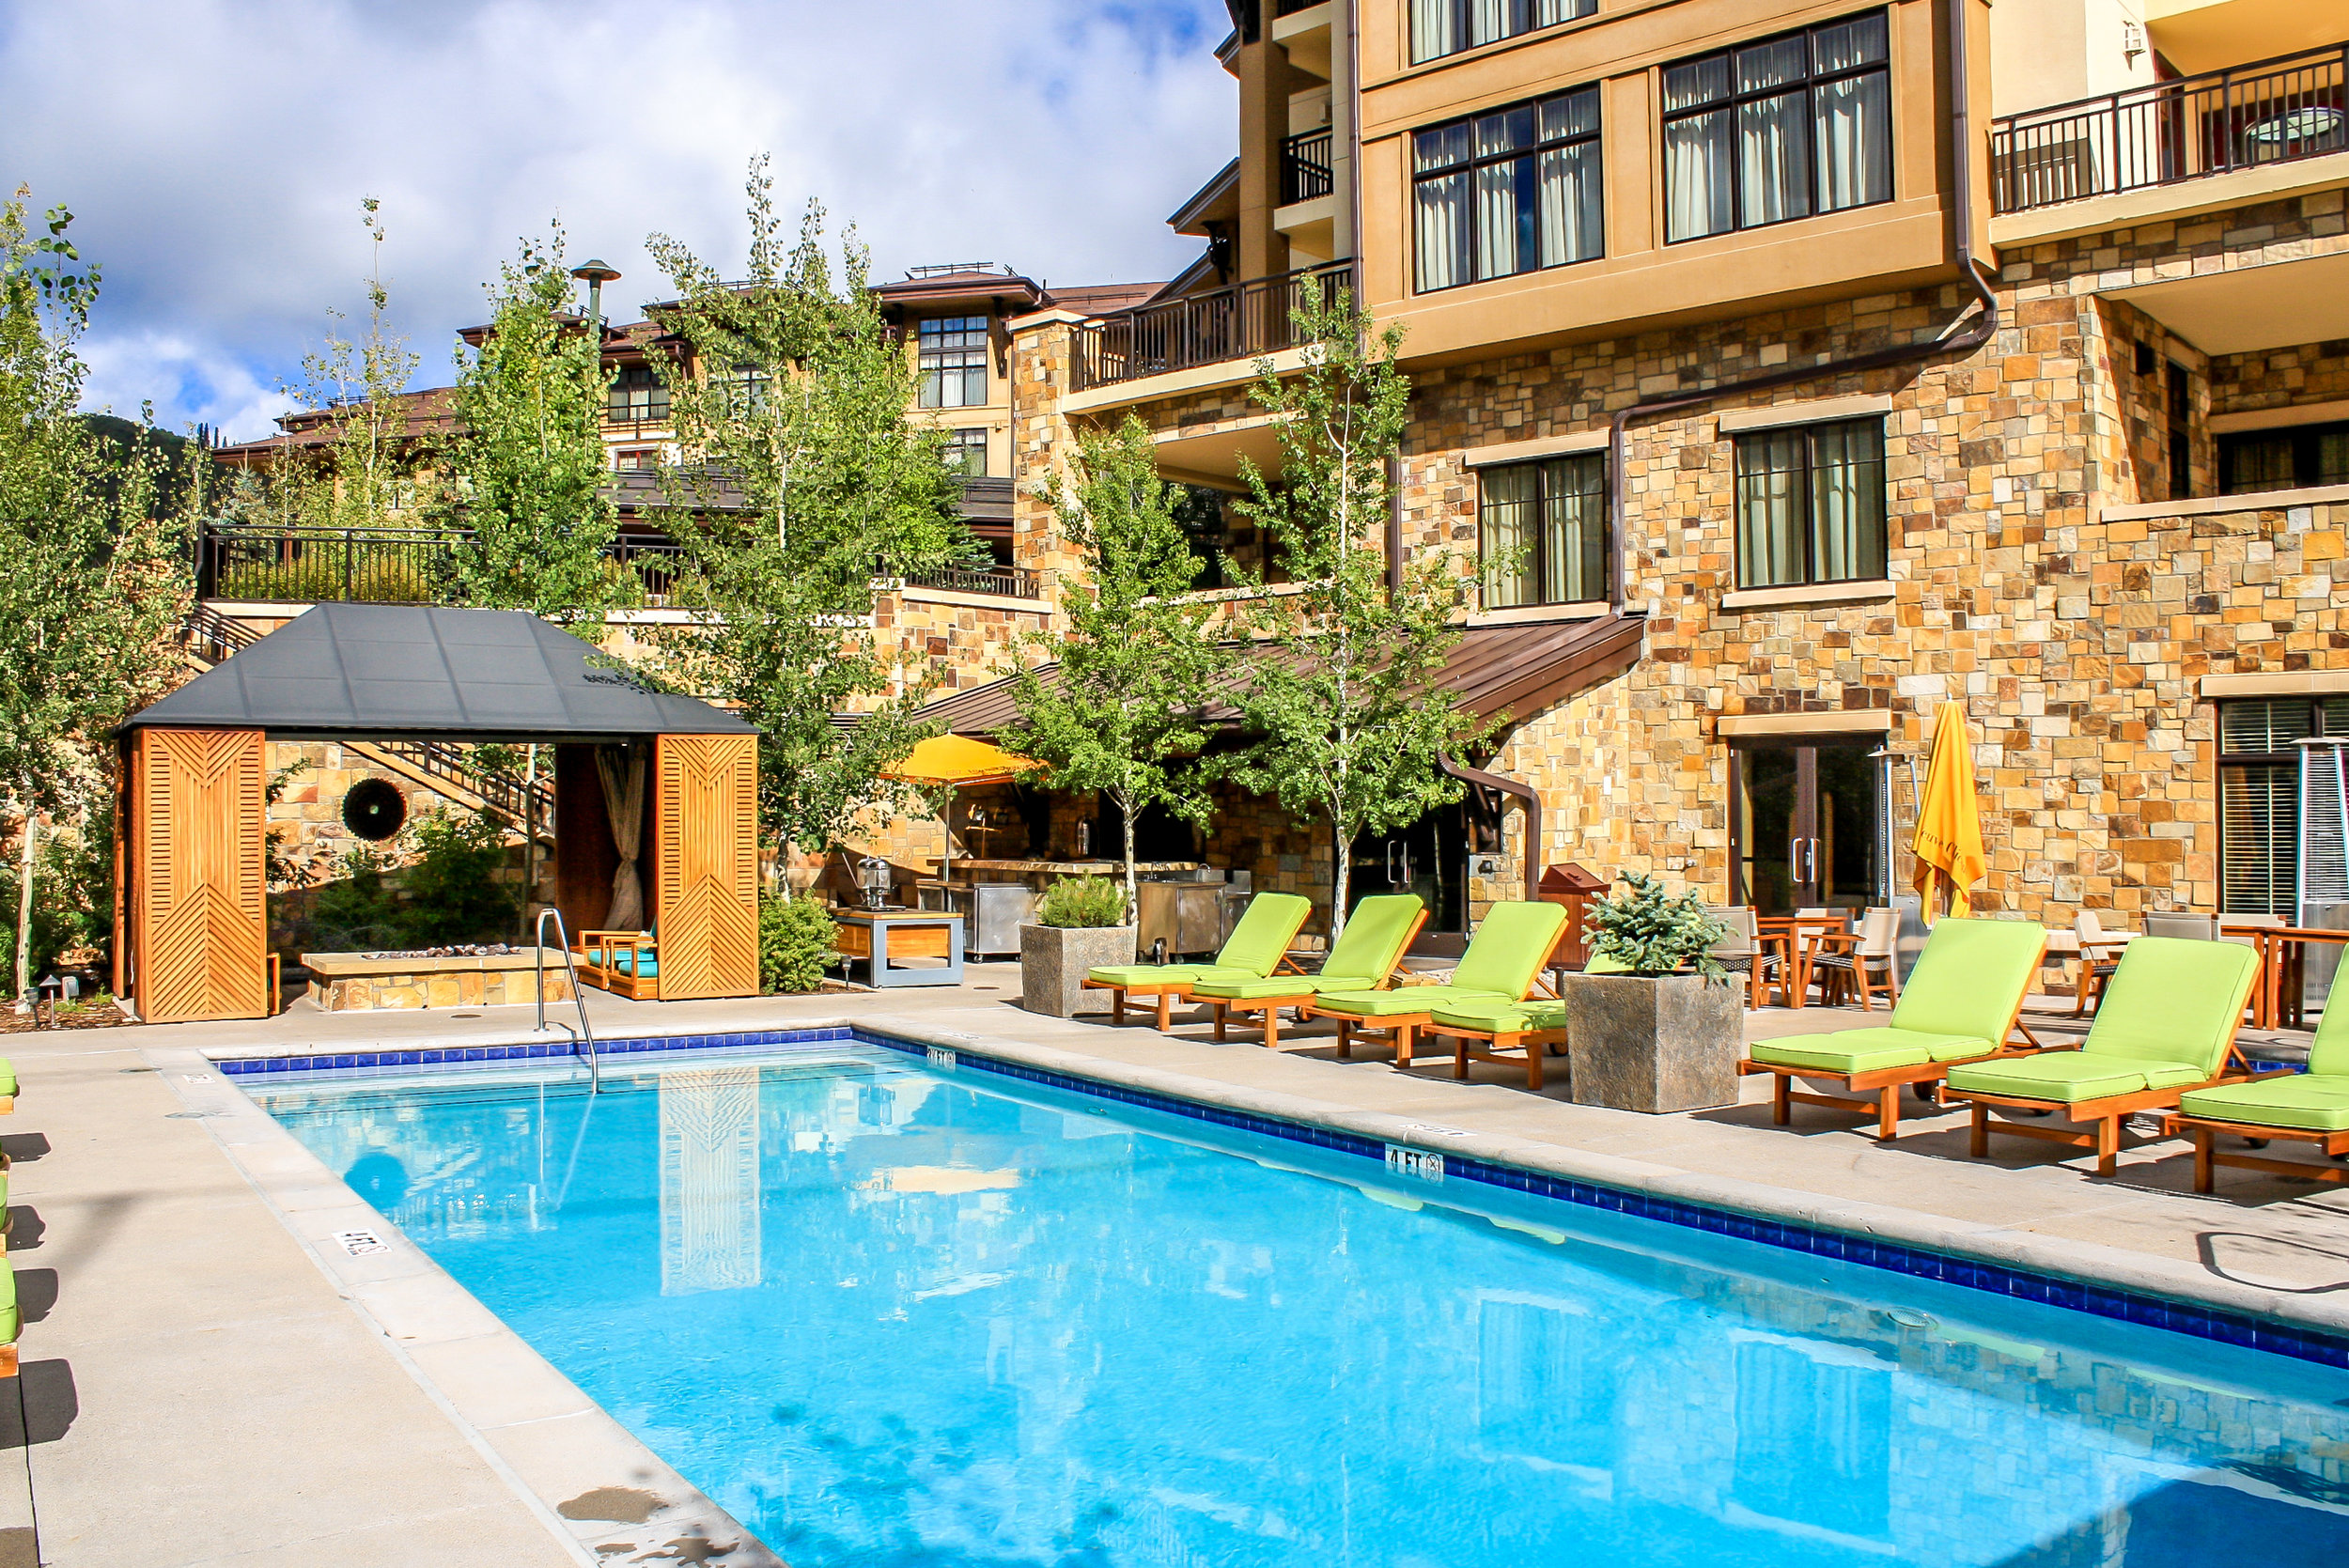 """<img src="""" studioINSITE_Viceroy_Snowmass_Pool-2-2 """"alt=""""  Resort, mountain resort, hotel, vacation homes, condominium, roof deck, design over structure, pool, site planning, landscape architecture  """" title=""""Viceroy at Snowmass""""/>"""